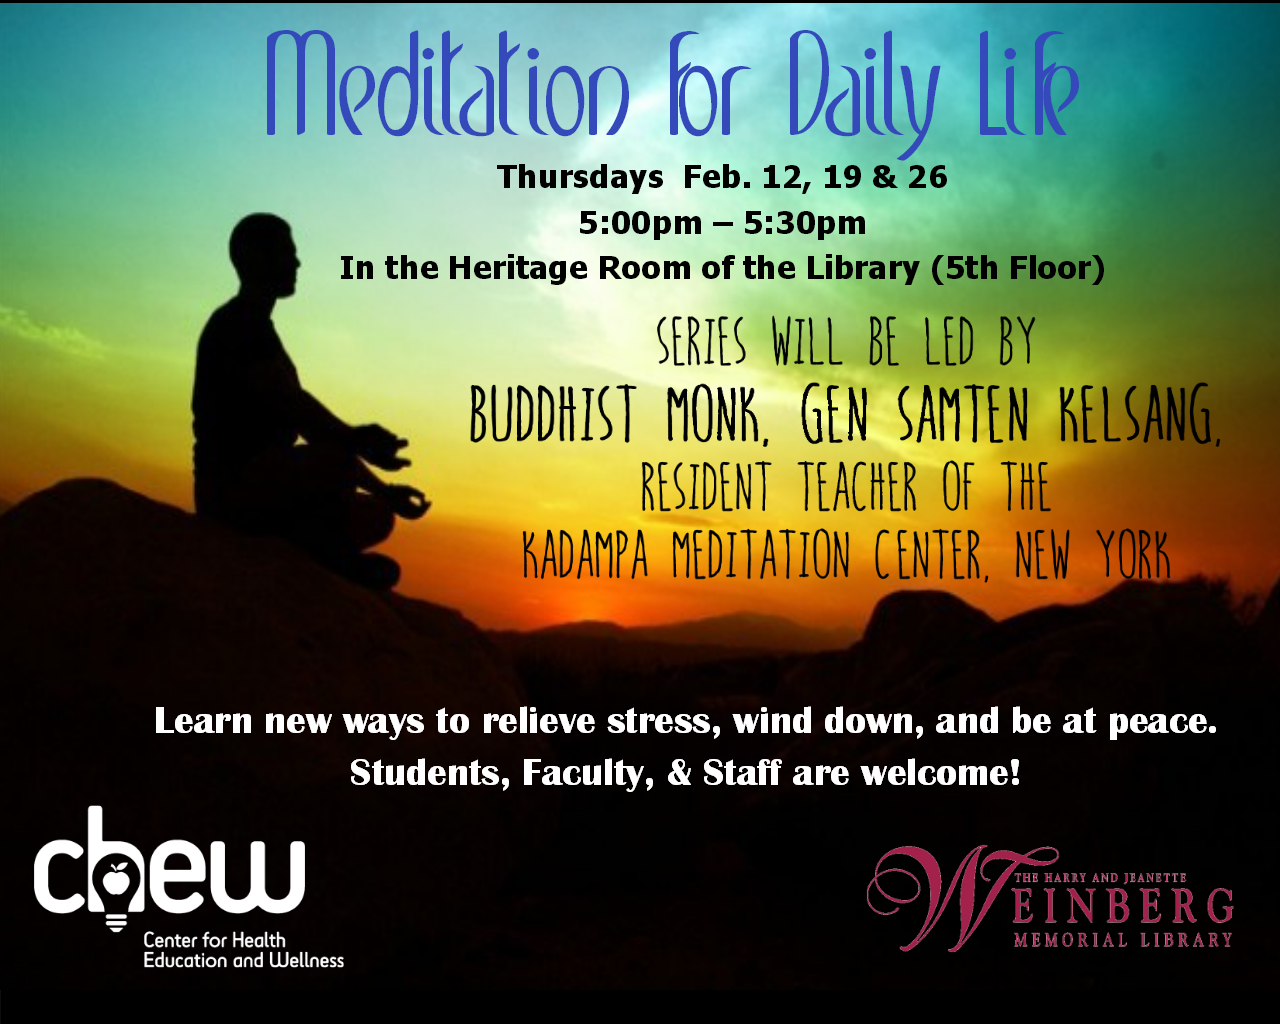 Meditation for Daily Life Program Hosted in the Library